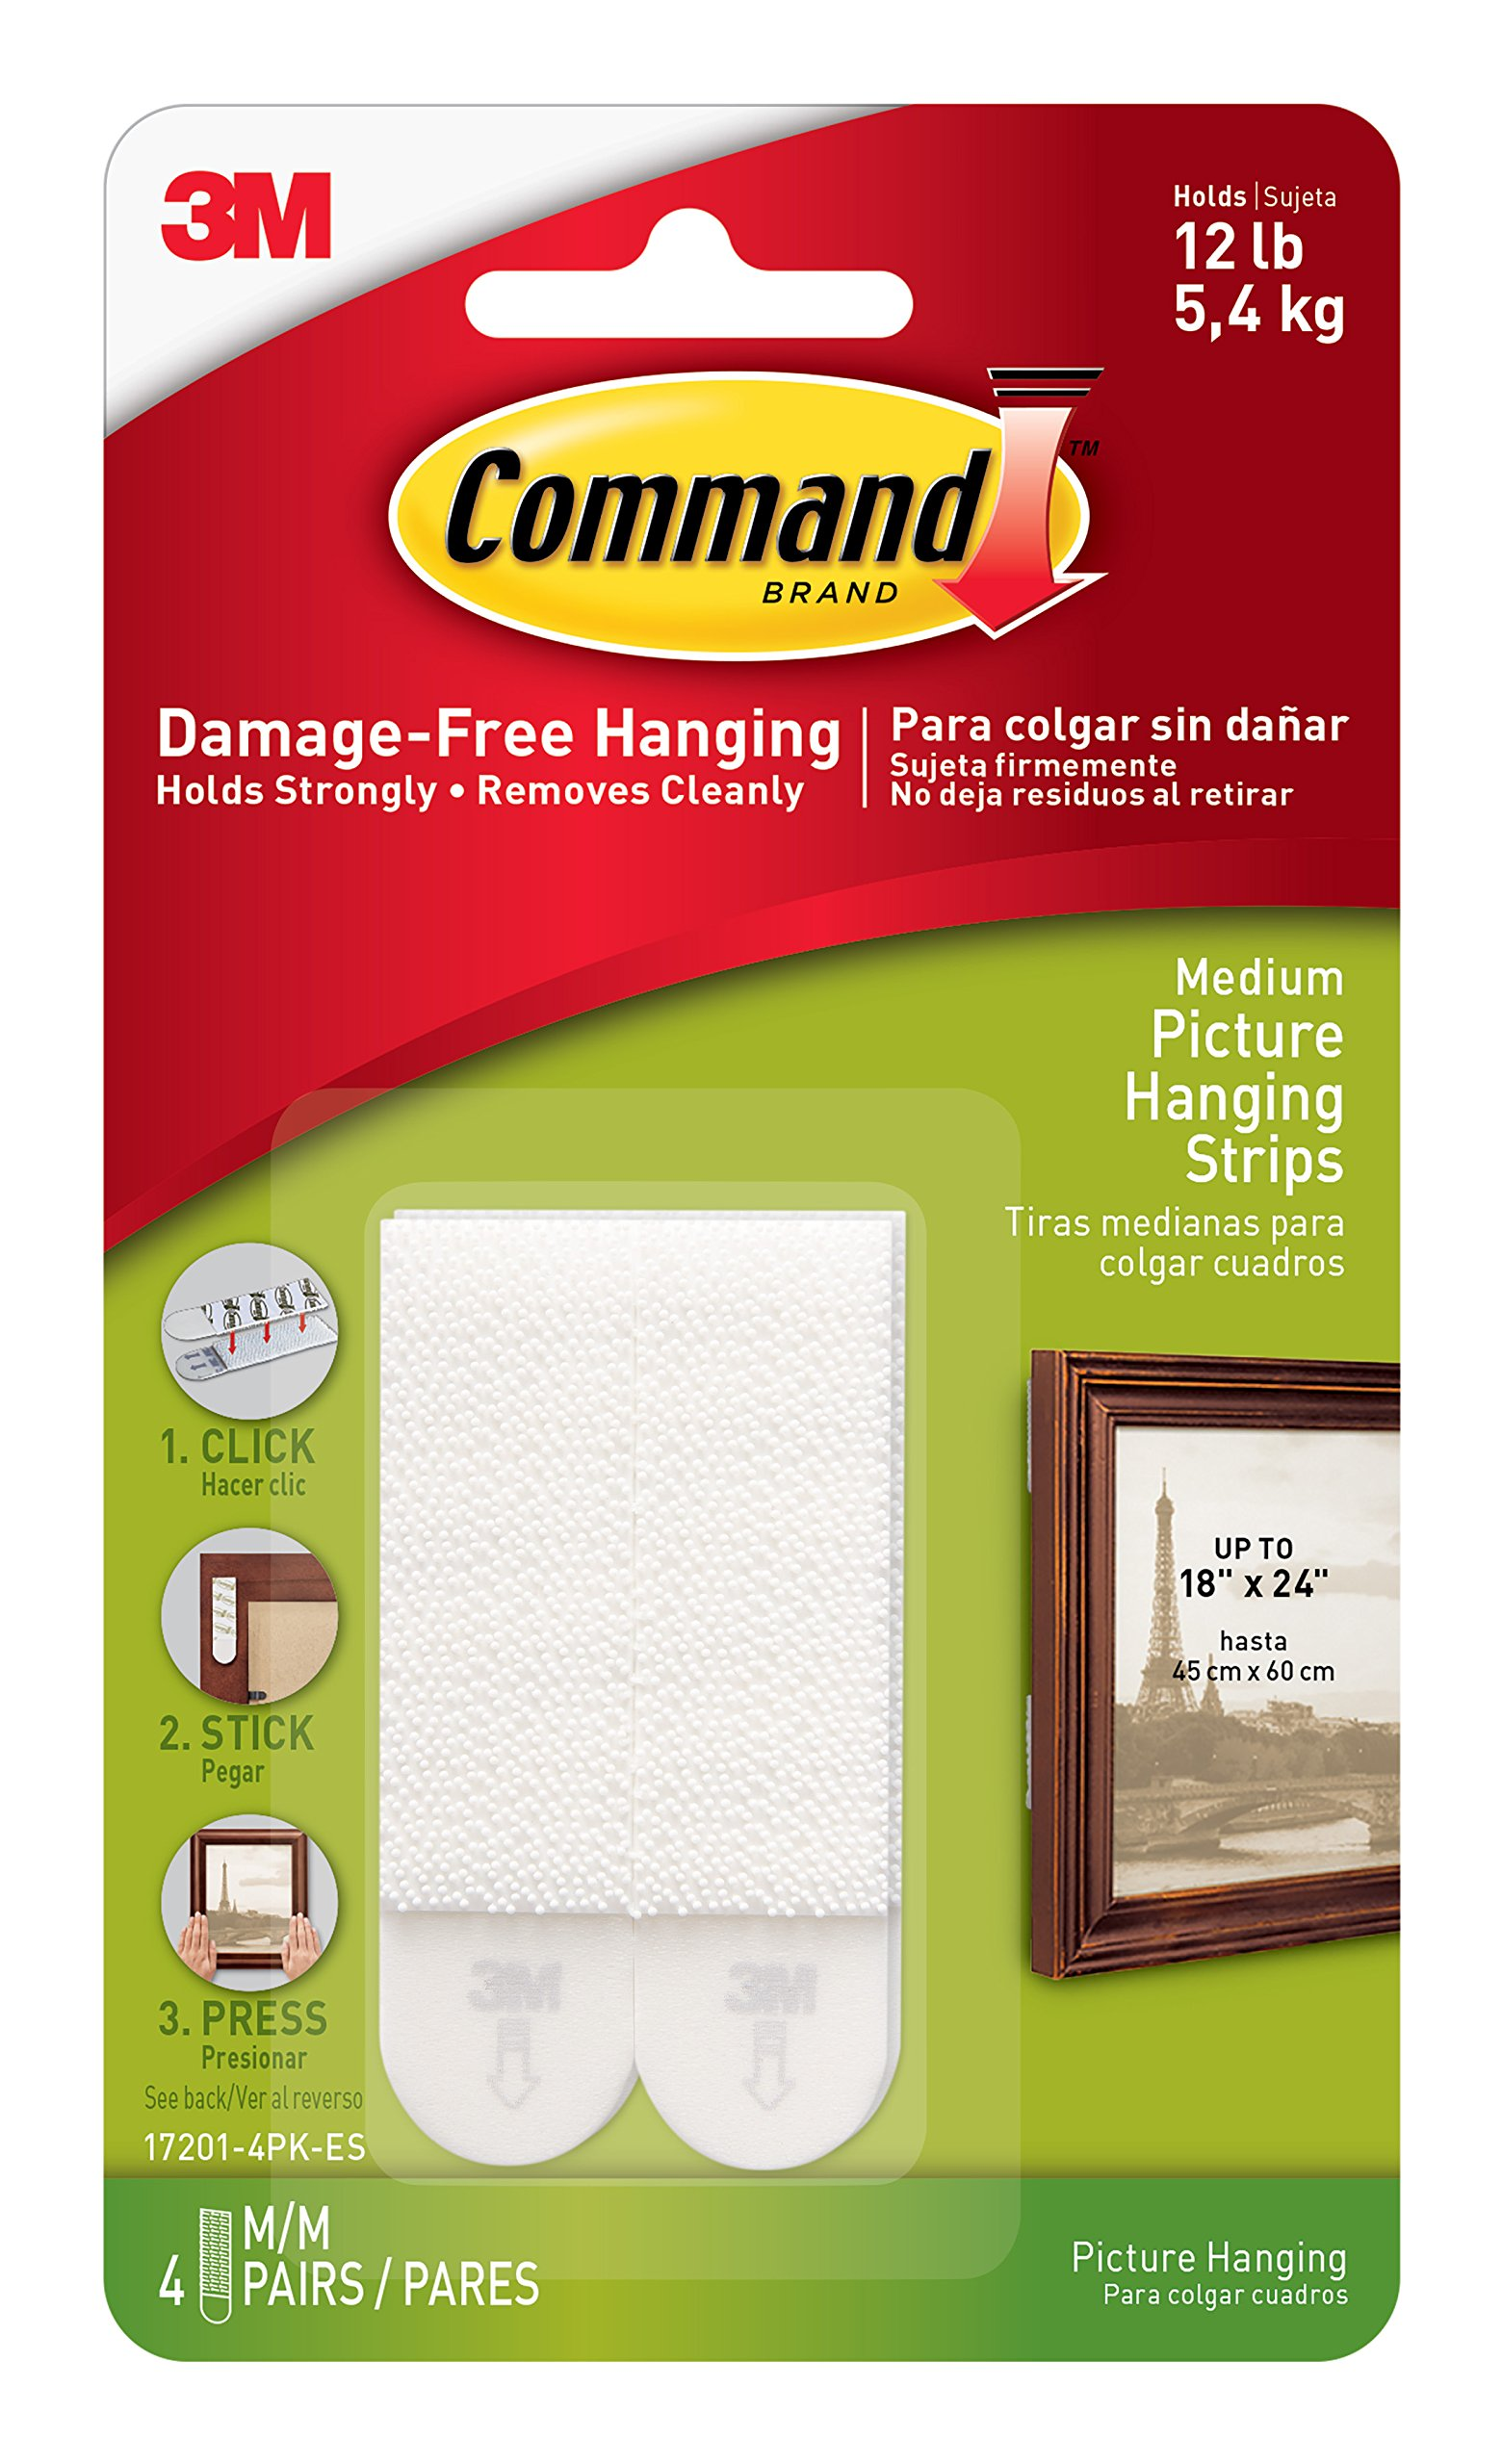 Command 12 lb Picture Hanging Strips, Medium, 6-packages (24 pairs total) (17201-4PK-ES)